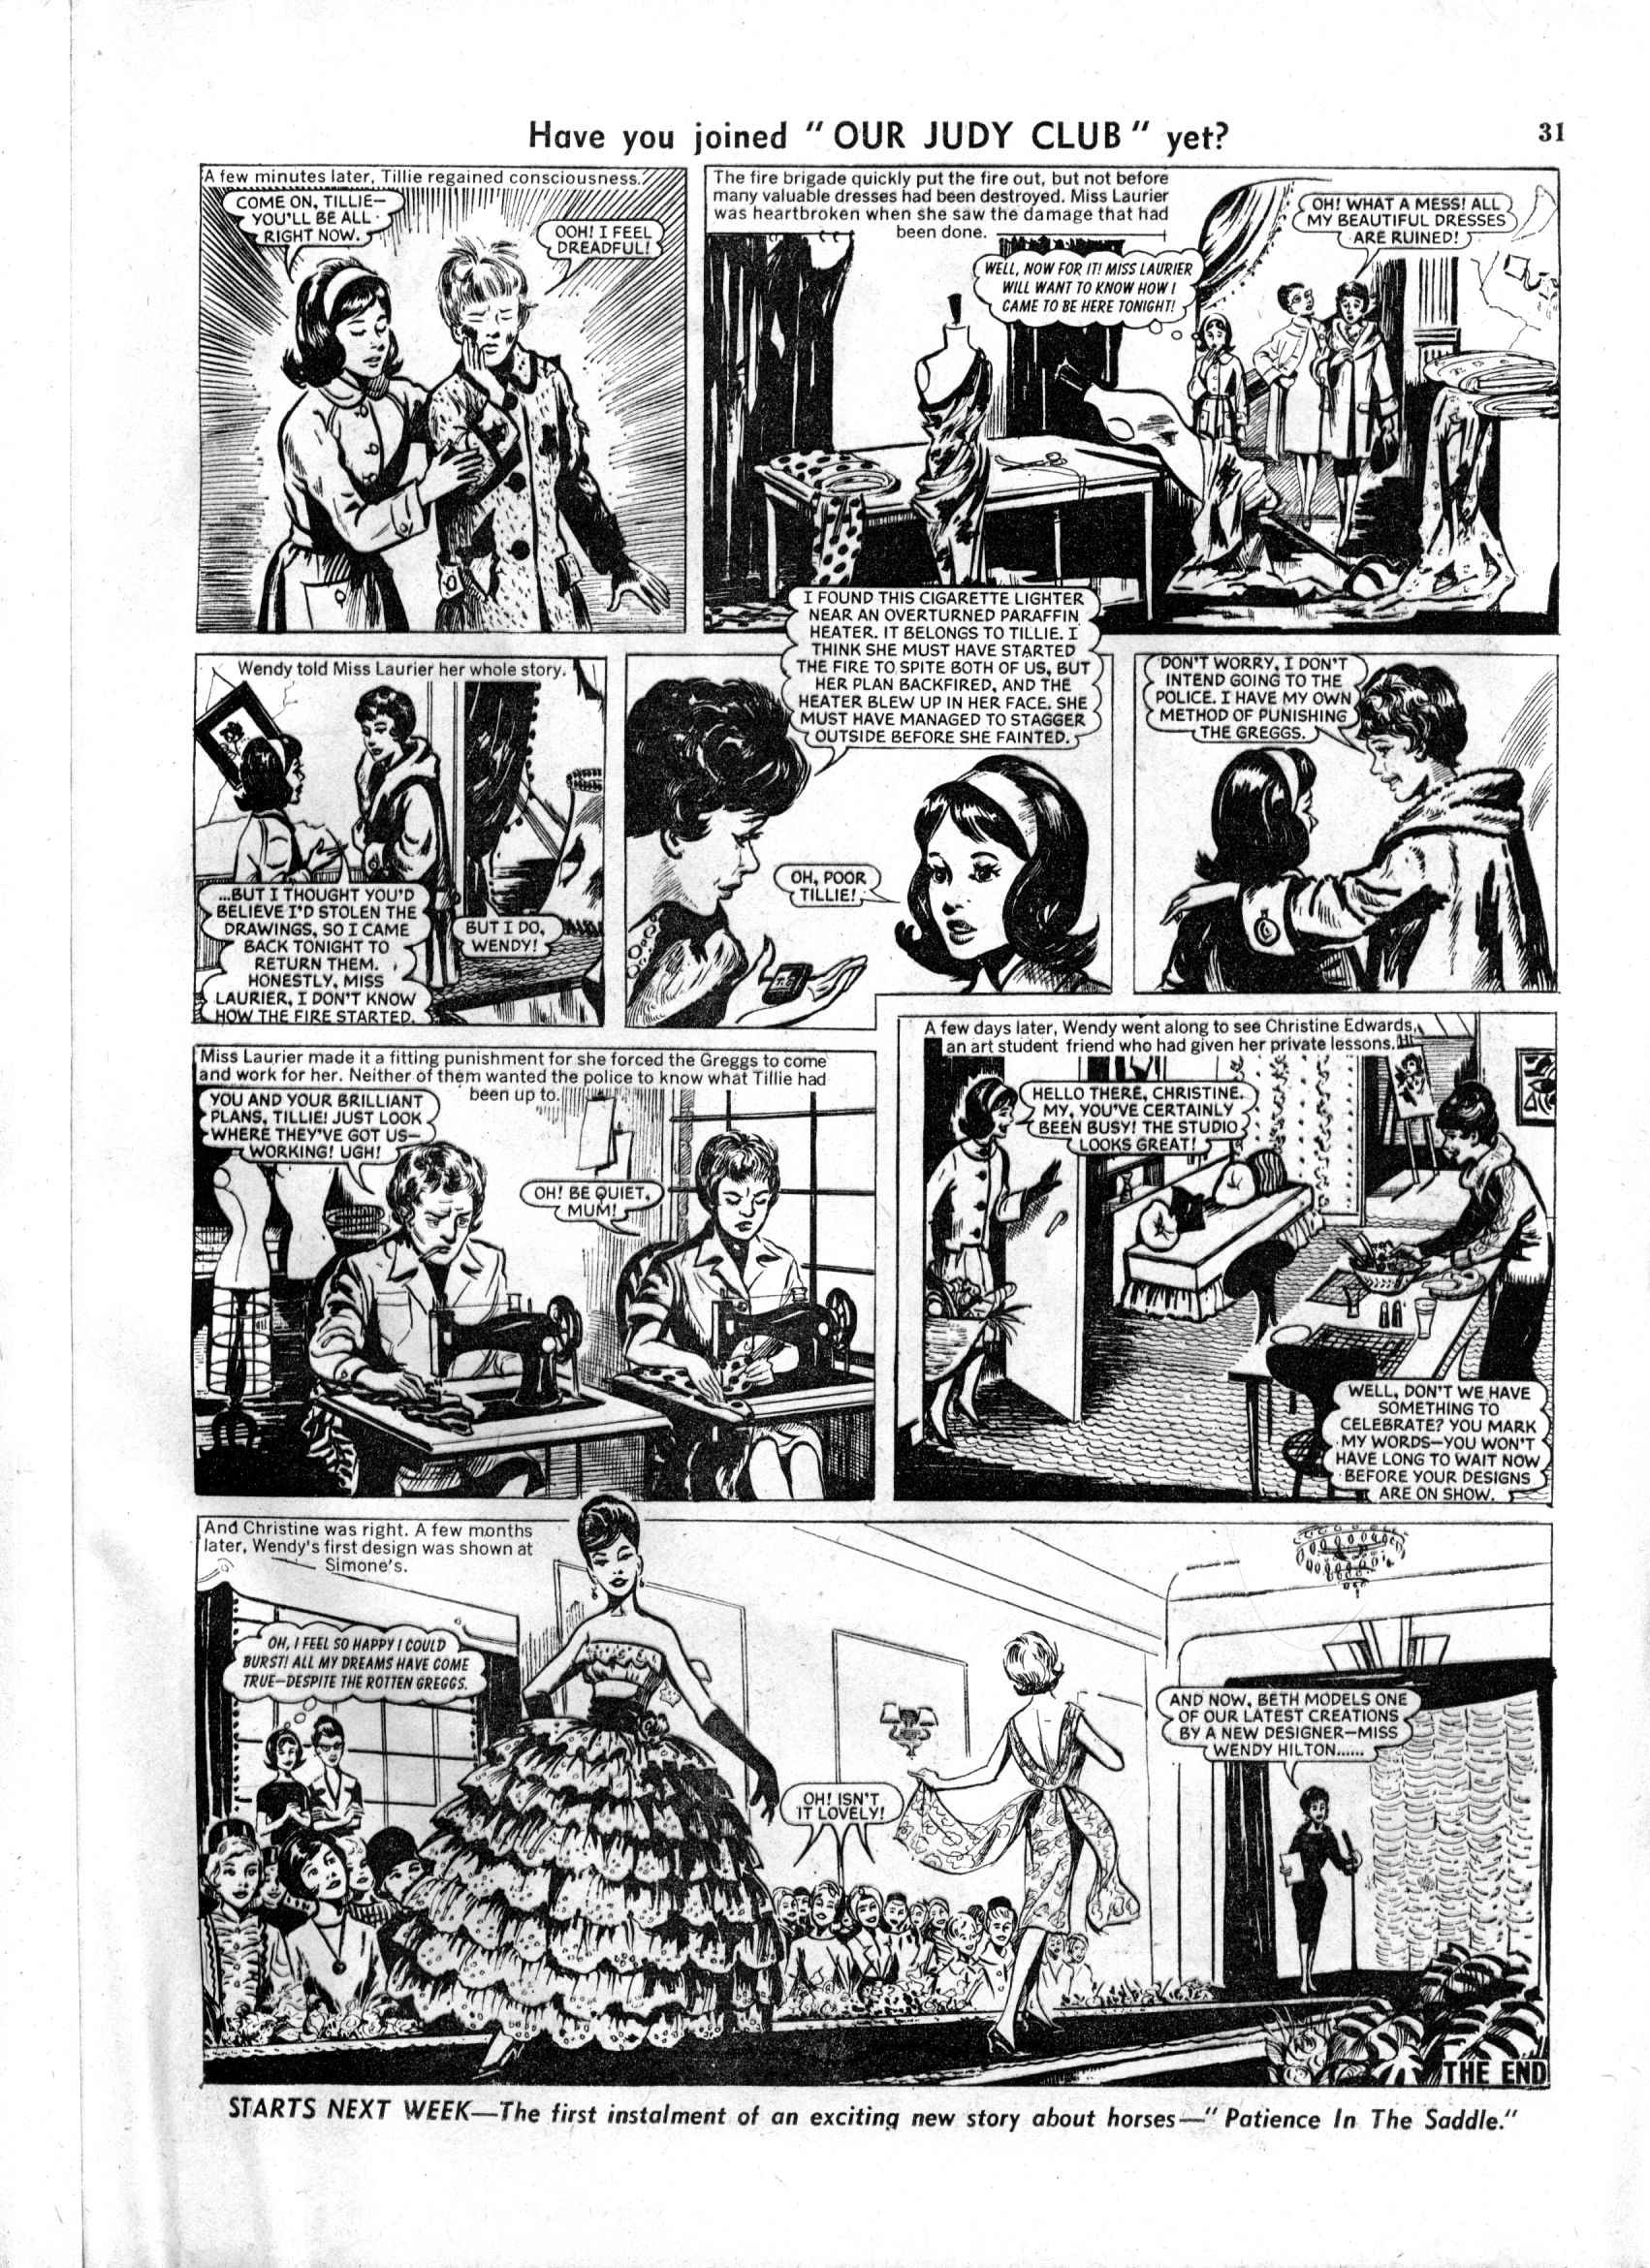 Read online Judy comic -  Issue #167 - 31